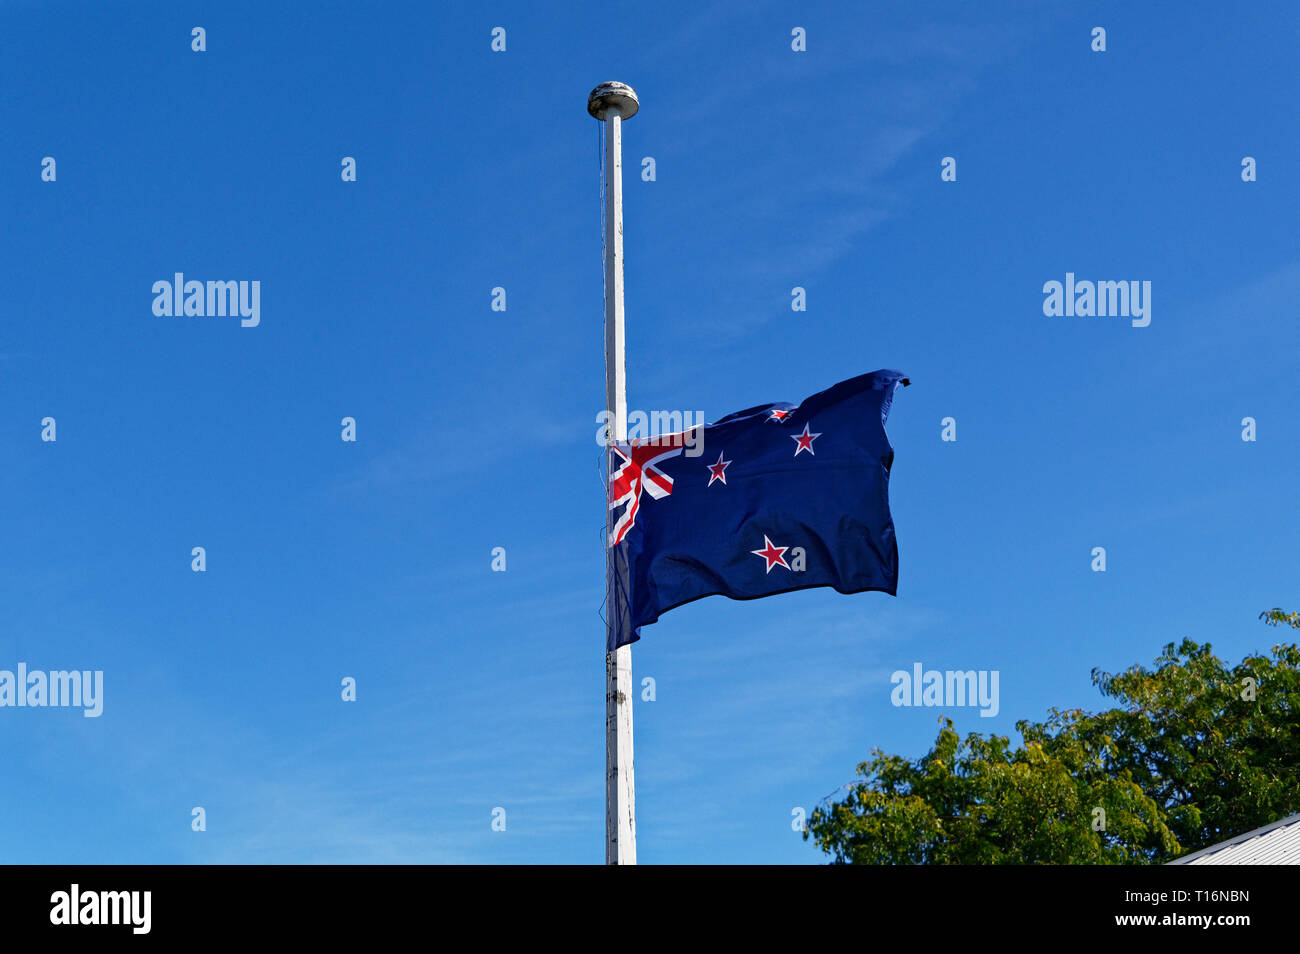 A sign of respect for the fallen, the New Zealand flag flies at half mast - Stock Image